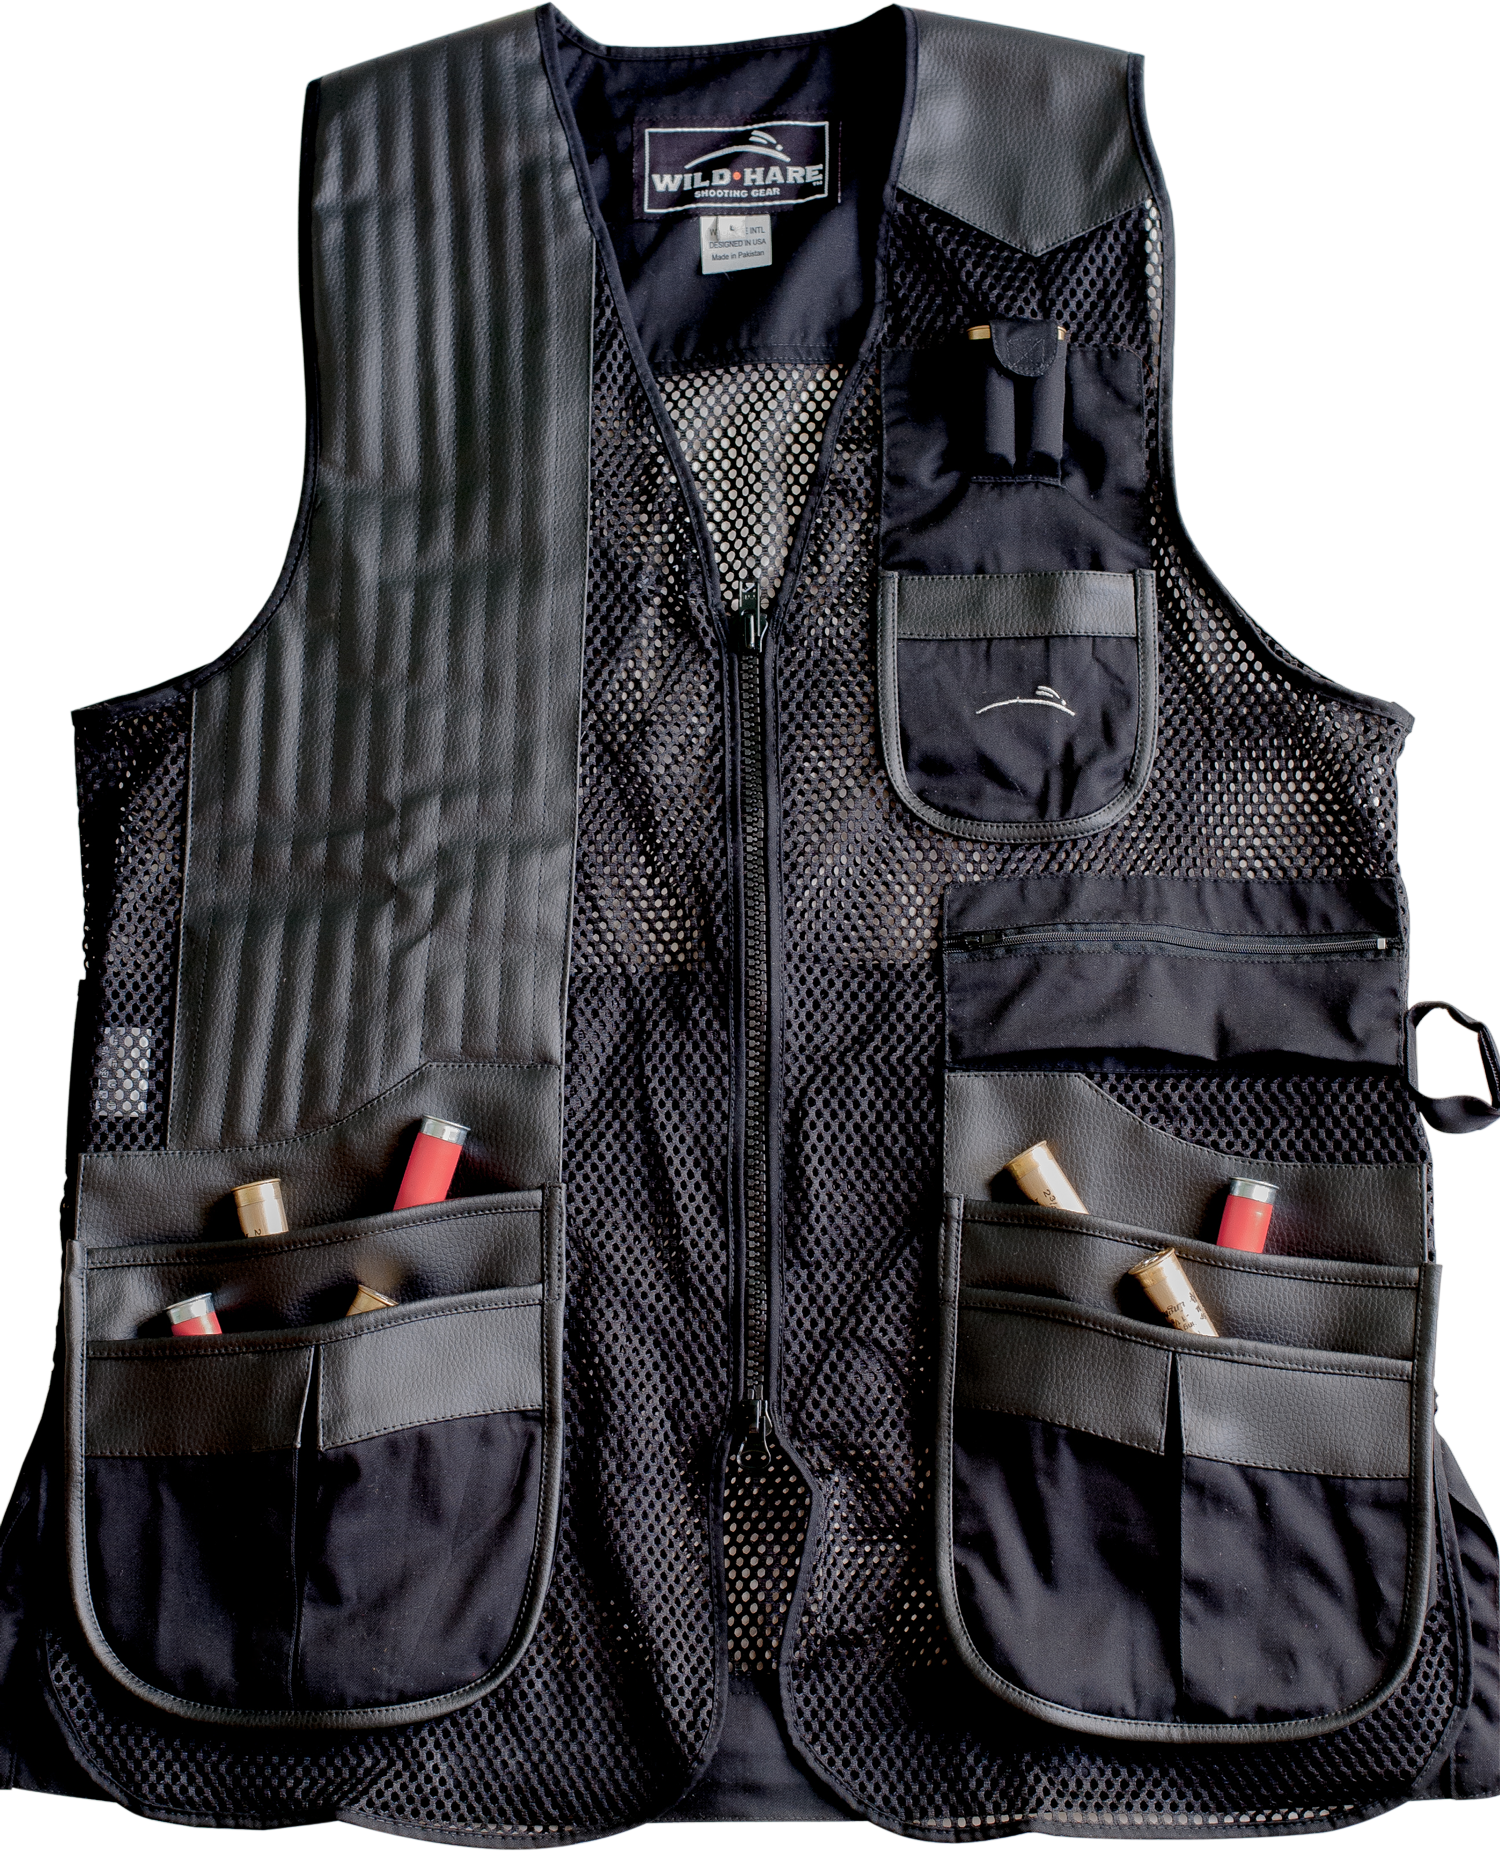 NEW Wild Hare Classy Clays Mesh Vest -- Black mesh shooting vest, heatwave, trap, skeet, sporting clays vest, reactar pad